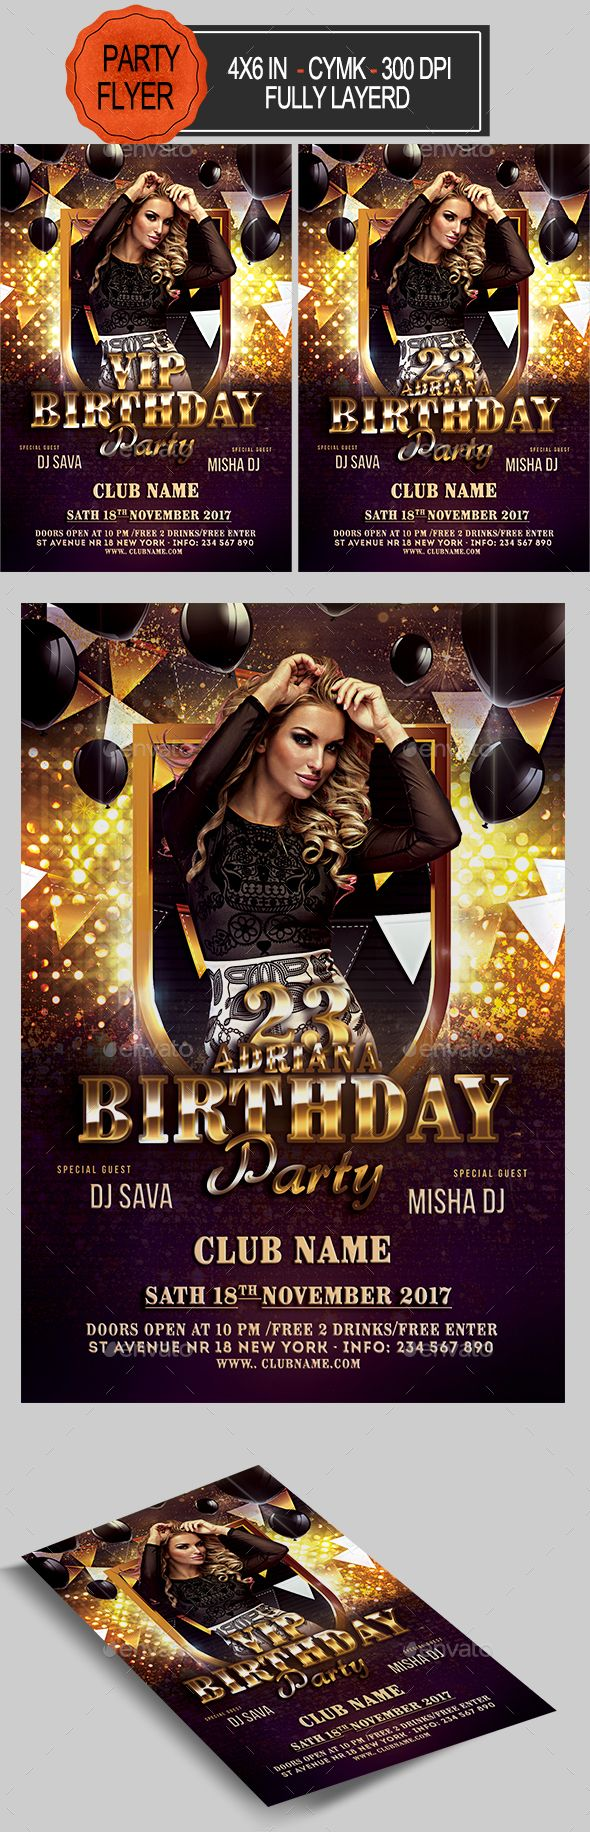 Birthday Flyer  Flyer Template Font Logo And Fonts